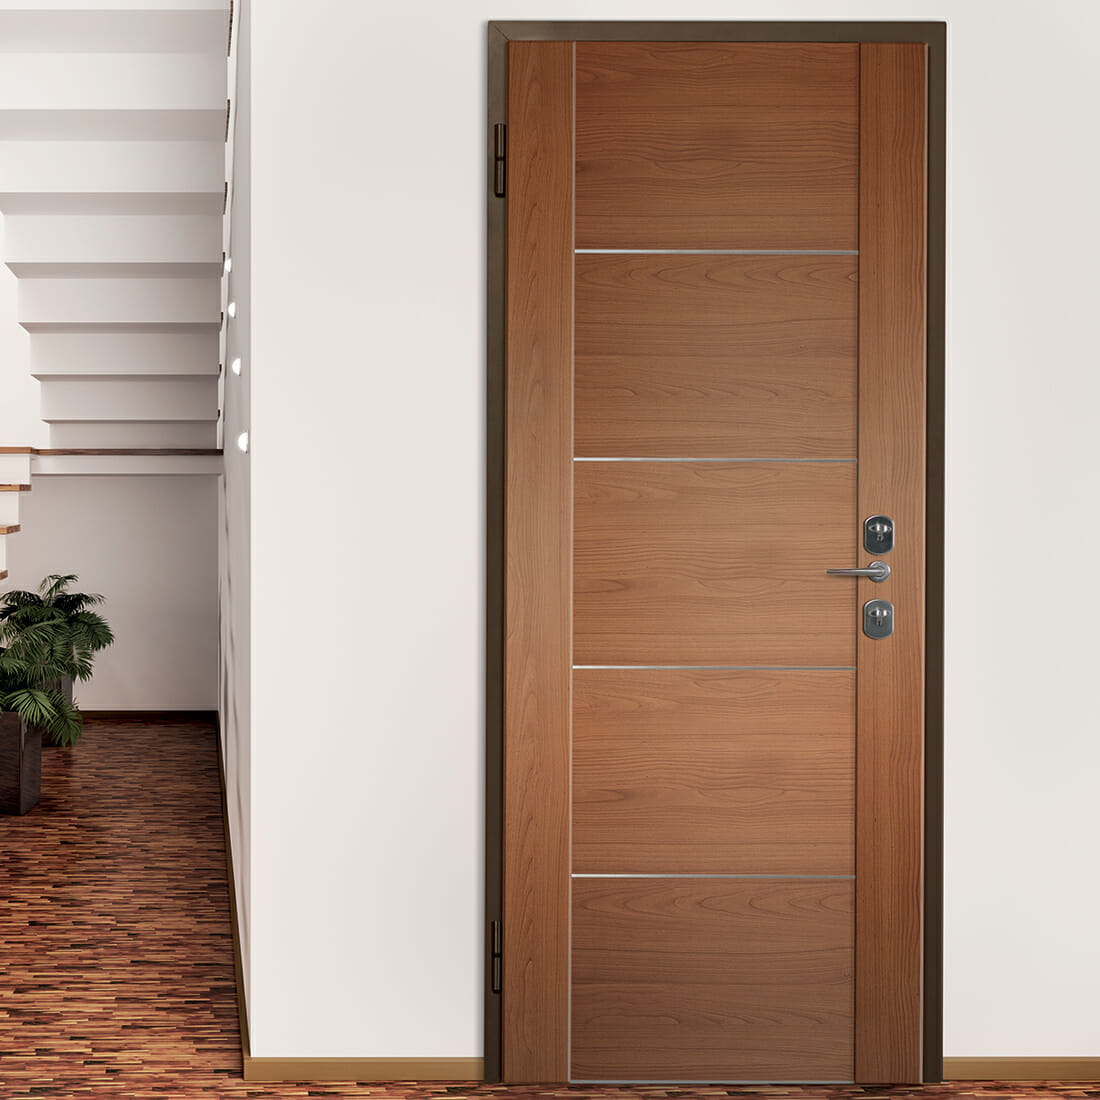 Elite & Bauxt armoured doors - design and professional line 100% made in Italy